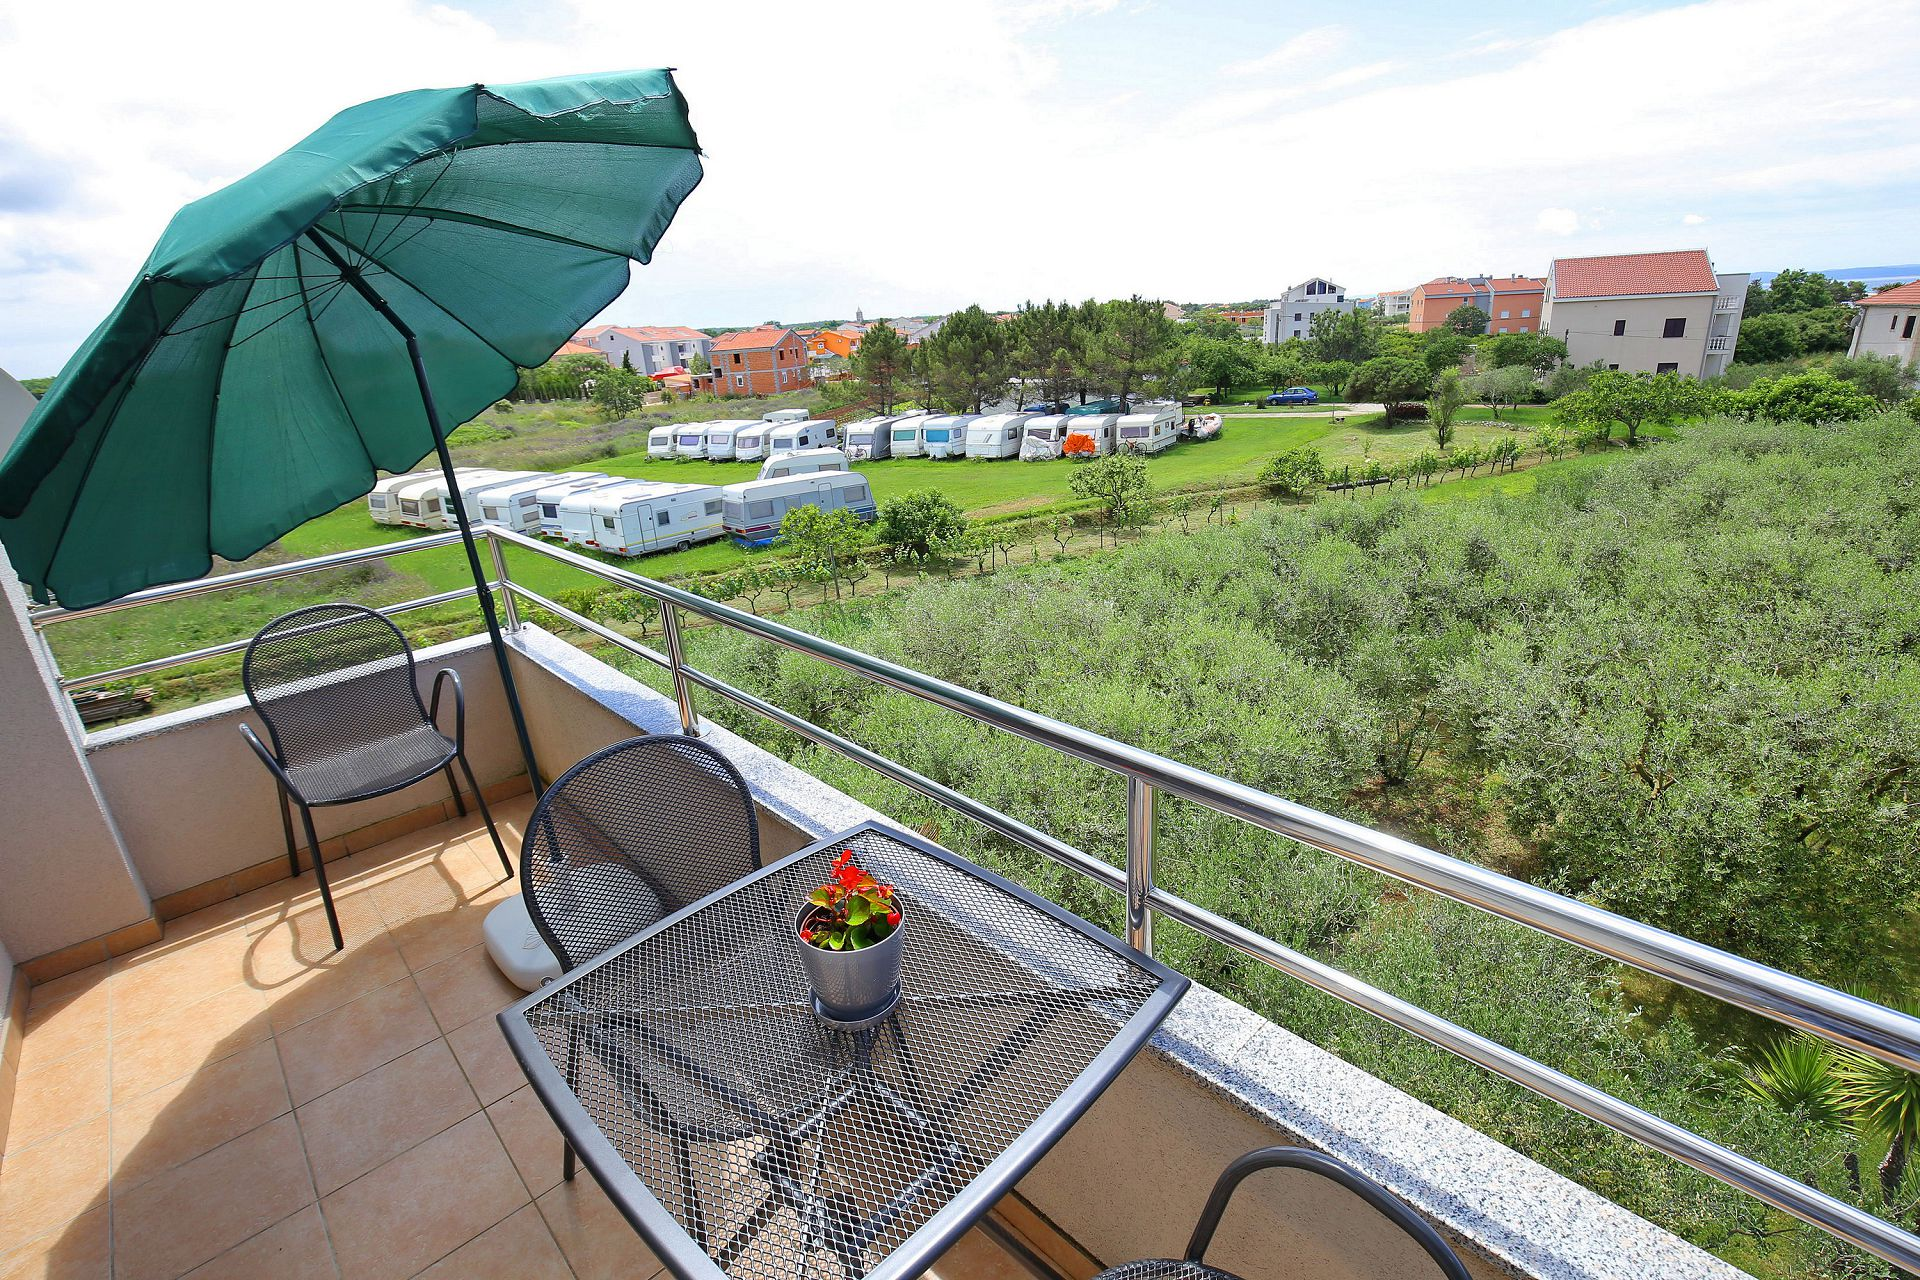 00418ZATZ - Zaton (Zadar) - Apartments Croatia - A3P(2+2): terrace